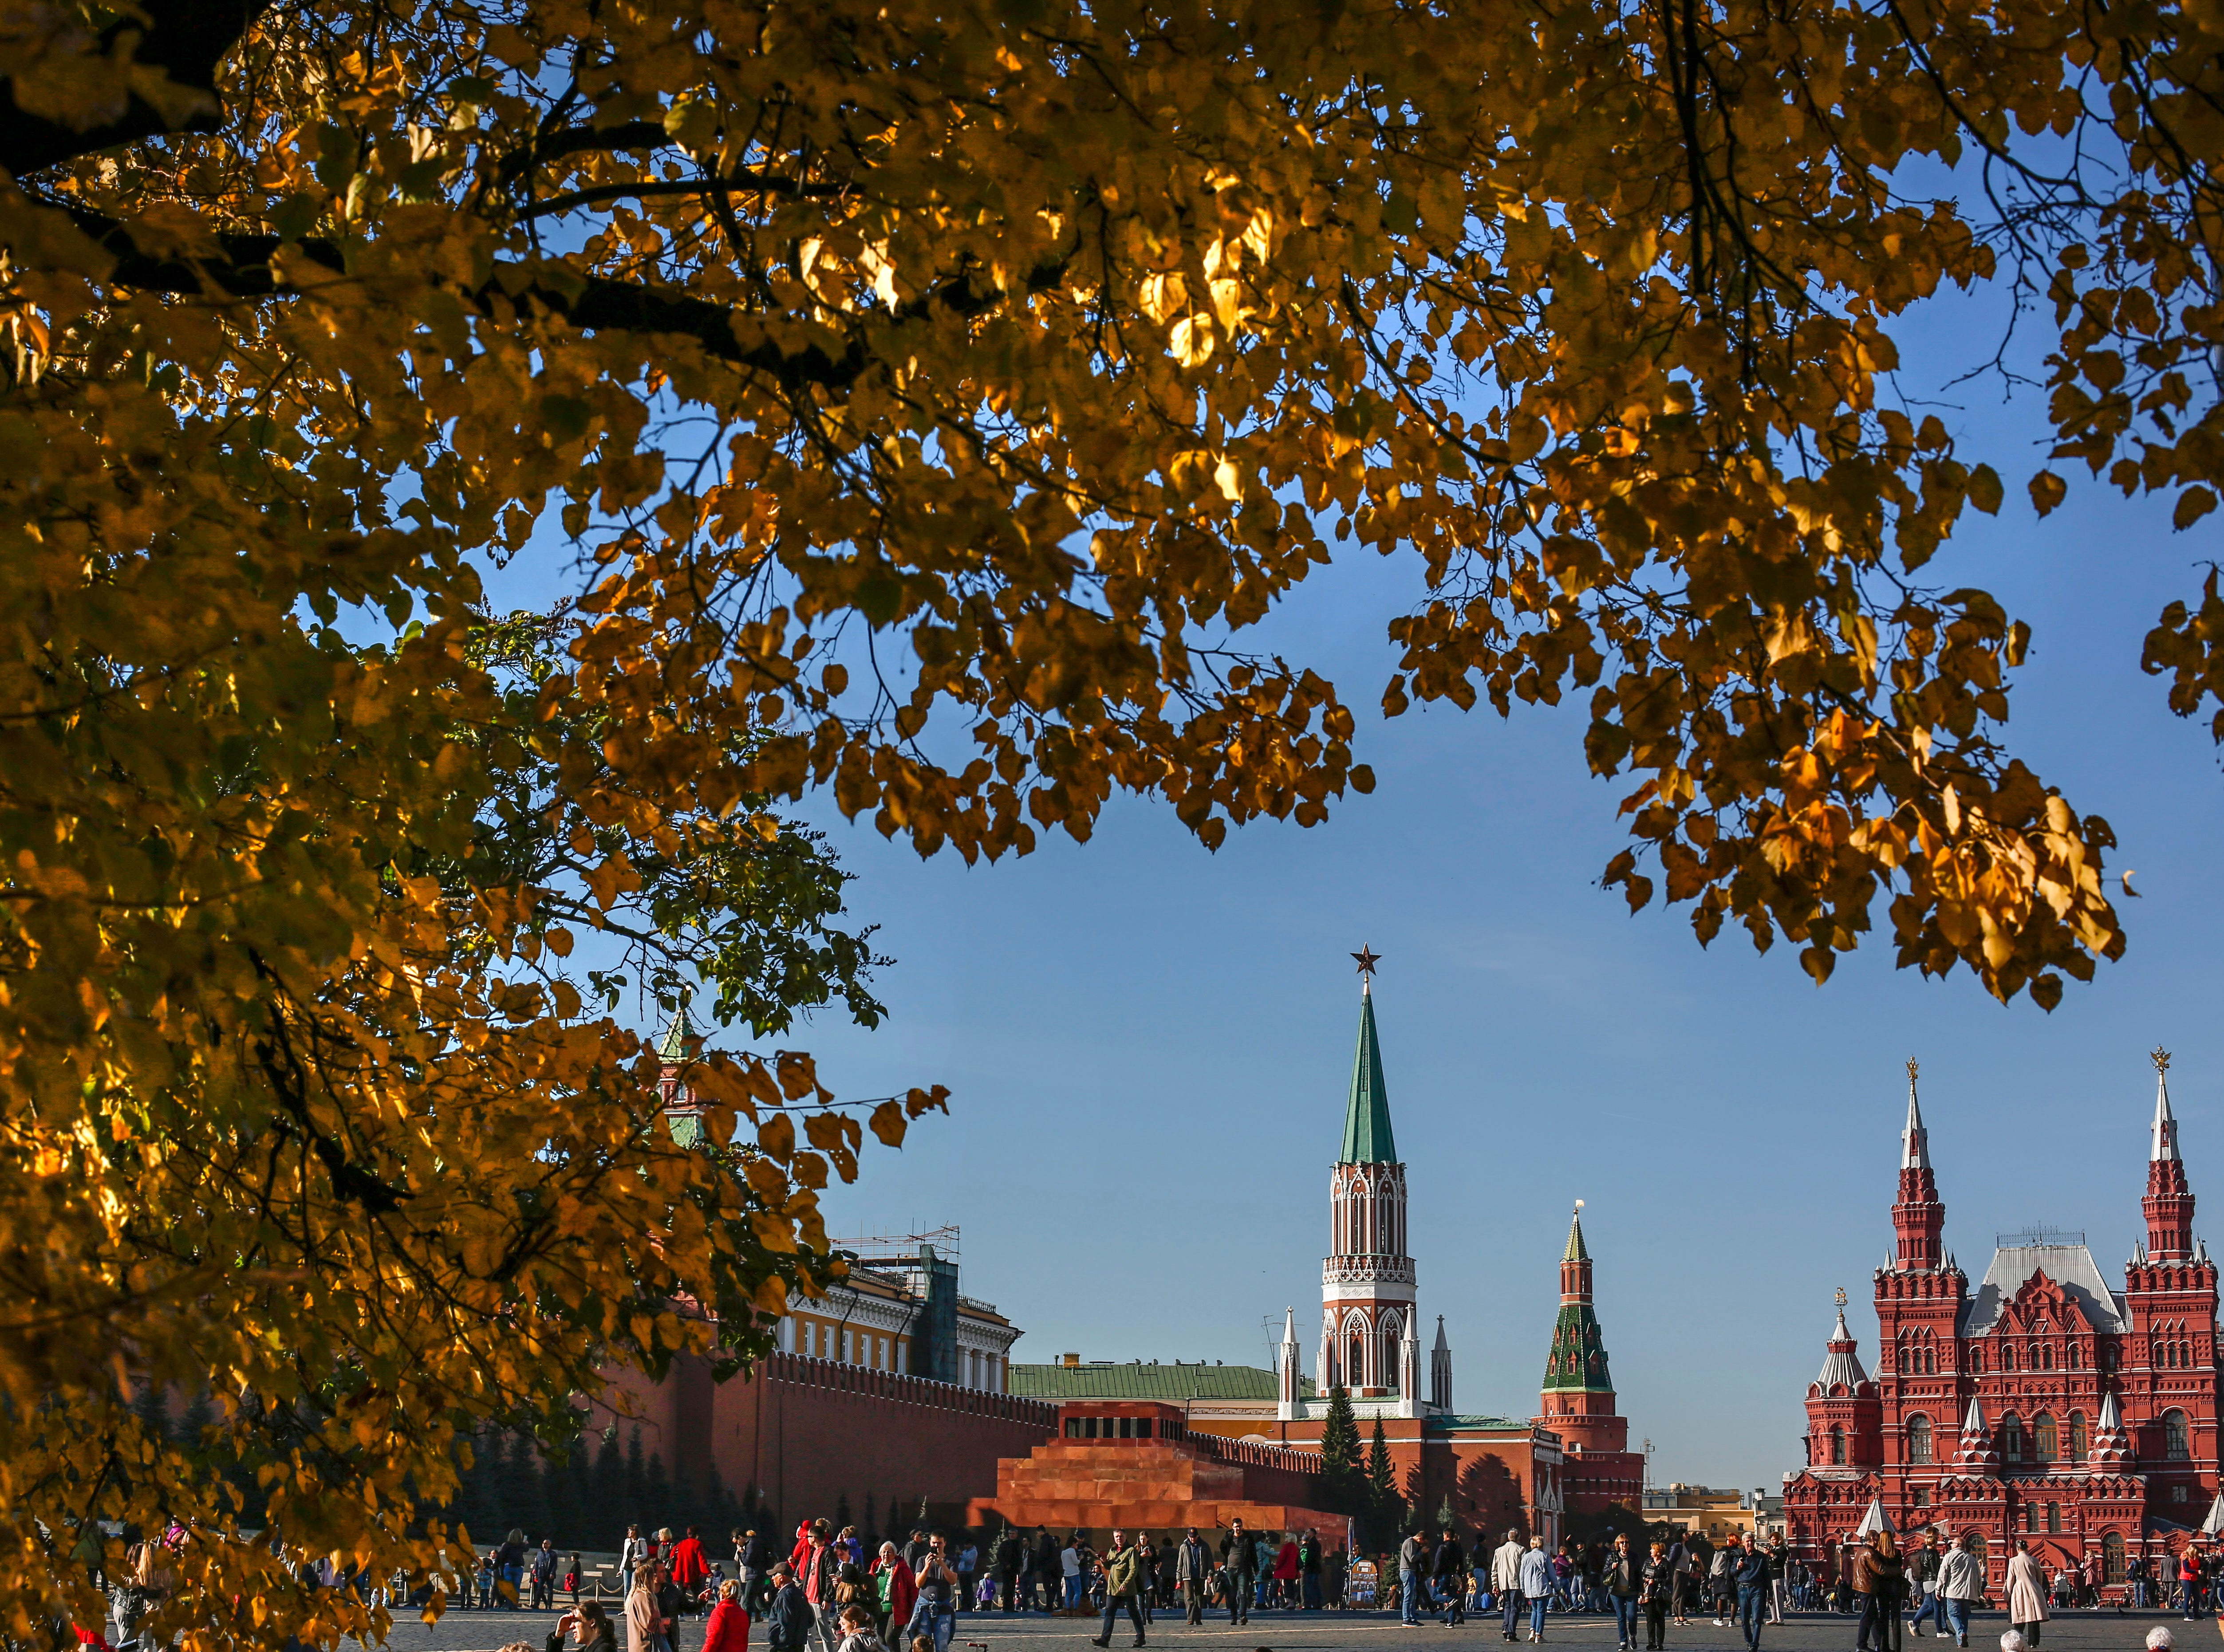 People walk on Red Square on a sunny and warm day in Moscow, Russia on Oct. 16, 2018.